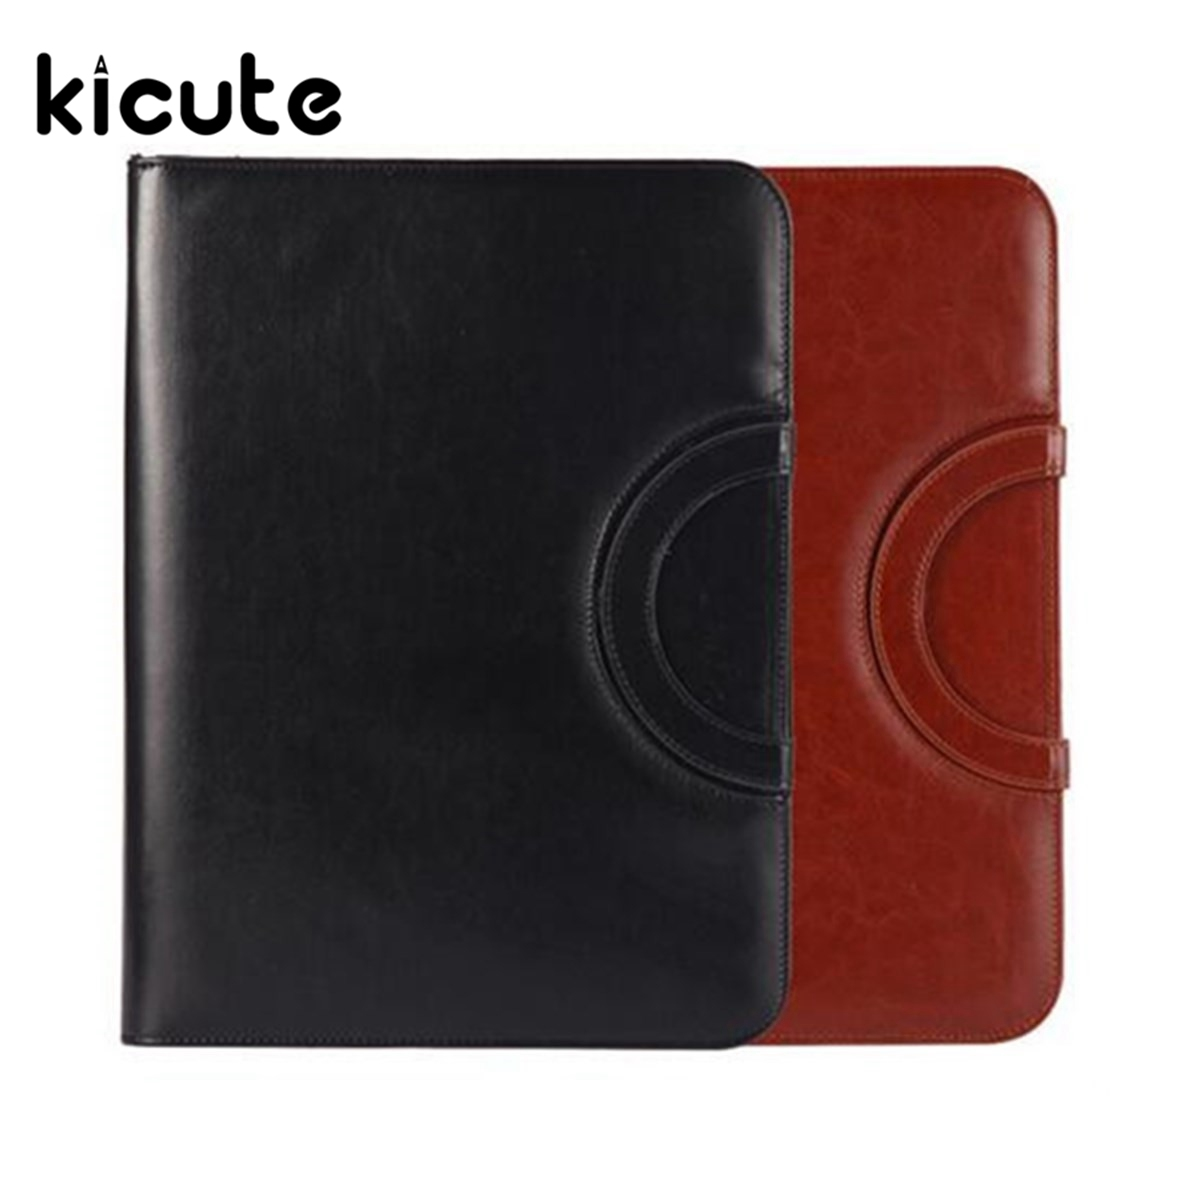 Kicute 1pc Brown/Black A4 PU Leather Zipped Ring Binder Conference Folder Document Bag Business Briefcase Office School Supplies blel hot high quality leather folder a4 briefcase bussiness conference folder black